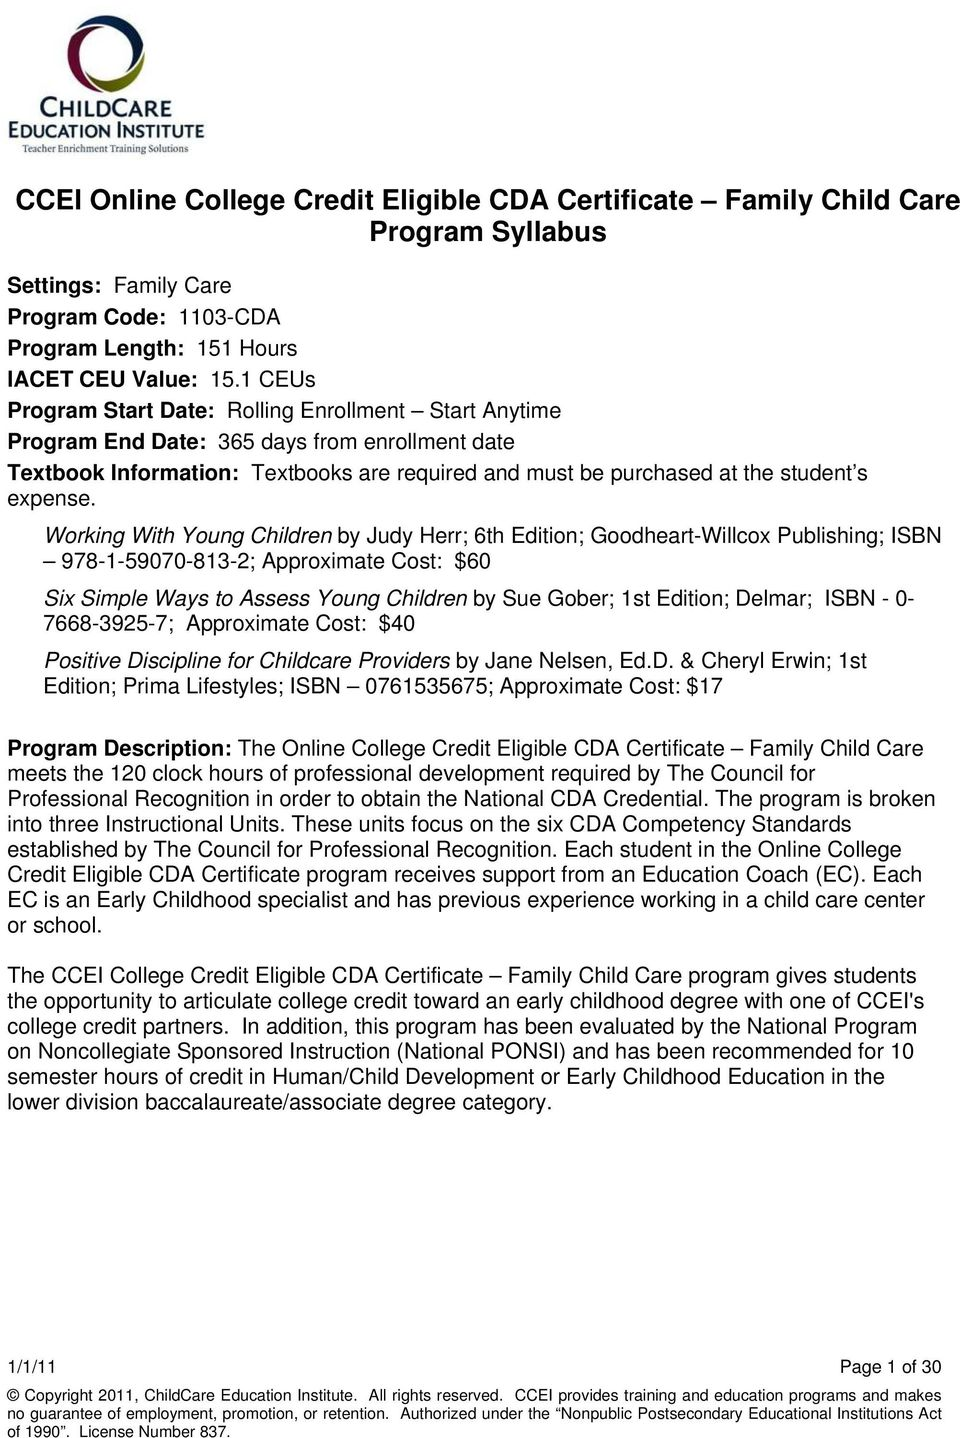 Ccei Online College Credit Eligible Cda Certificate Family Child